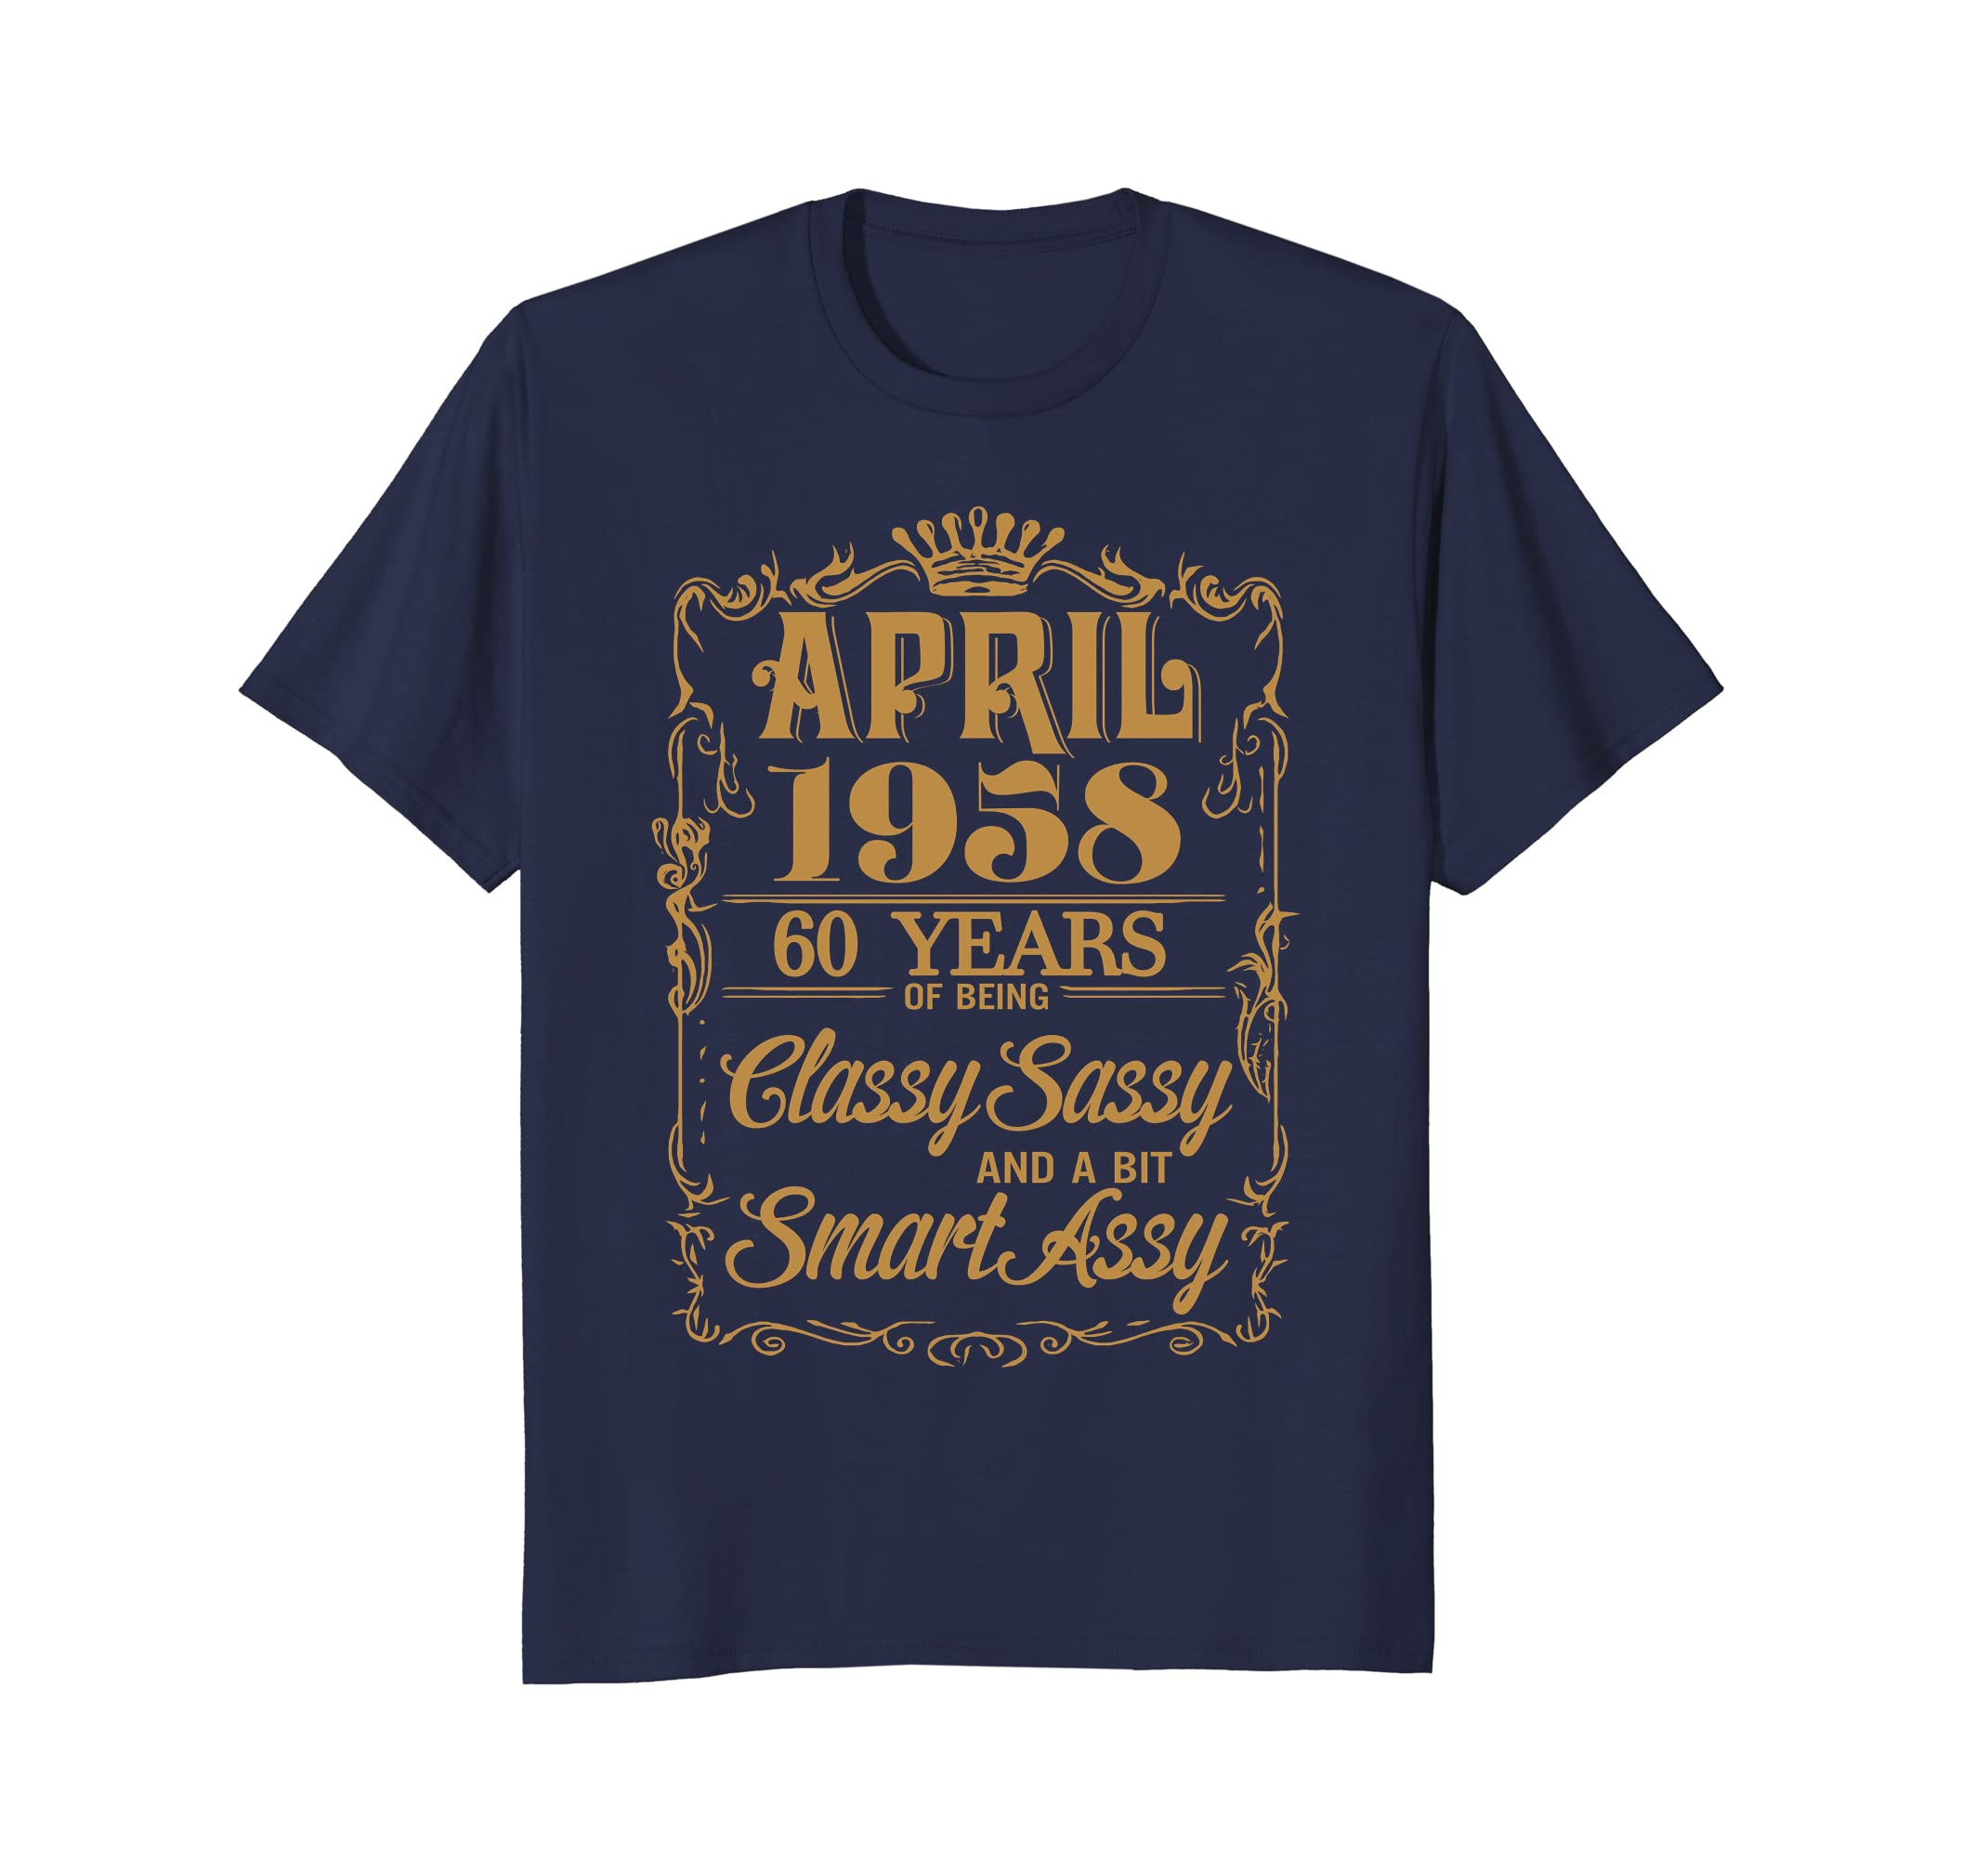 April 1958 60 Years Of Being Classy Sassy Smart Assy T-Shirt-ah my shirt one gift